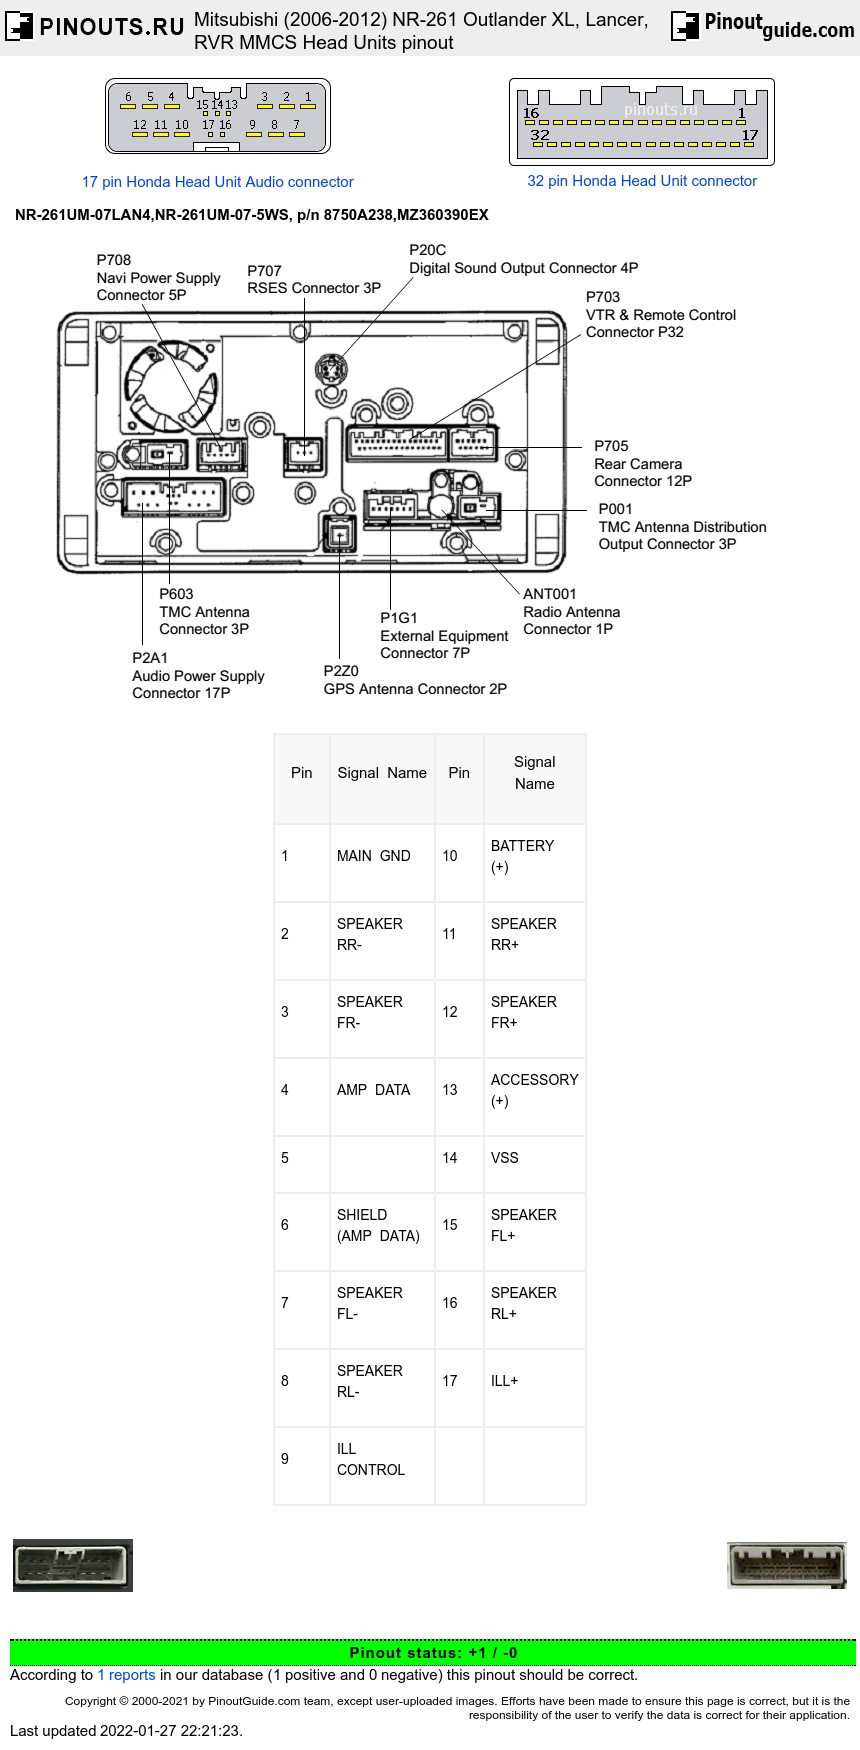 Mitsubishi MMCS NR-261UM-07LAN4,NR-261UM-07-5WS Outlander XL (2006-2012) Head Units diagram